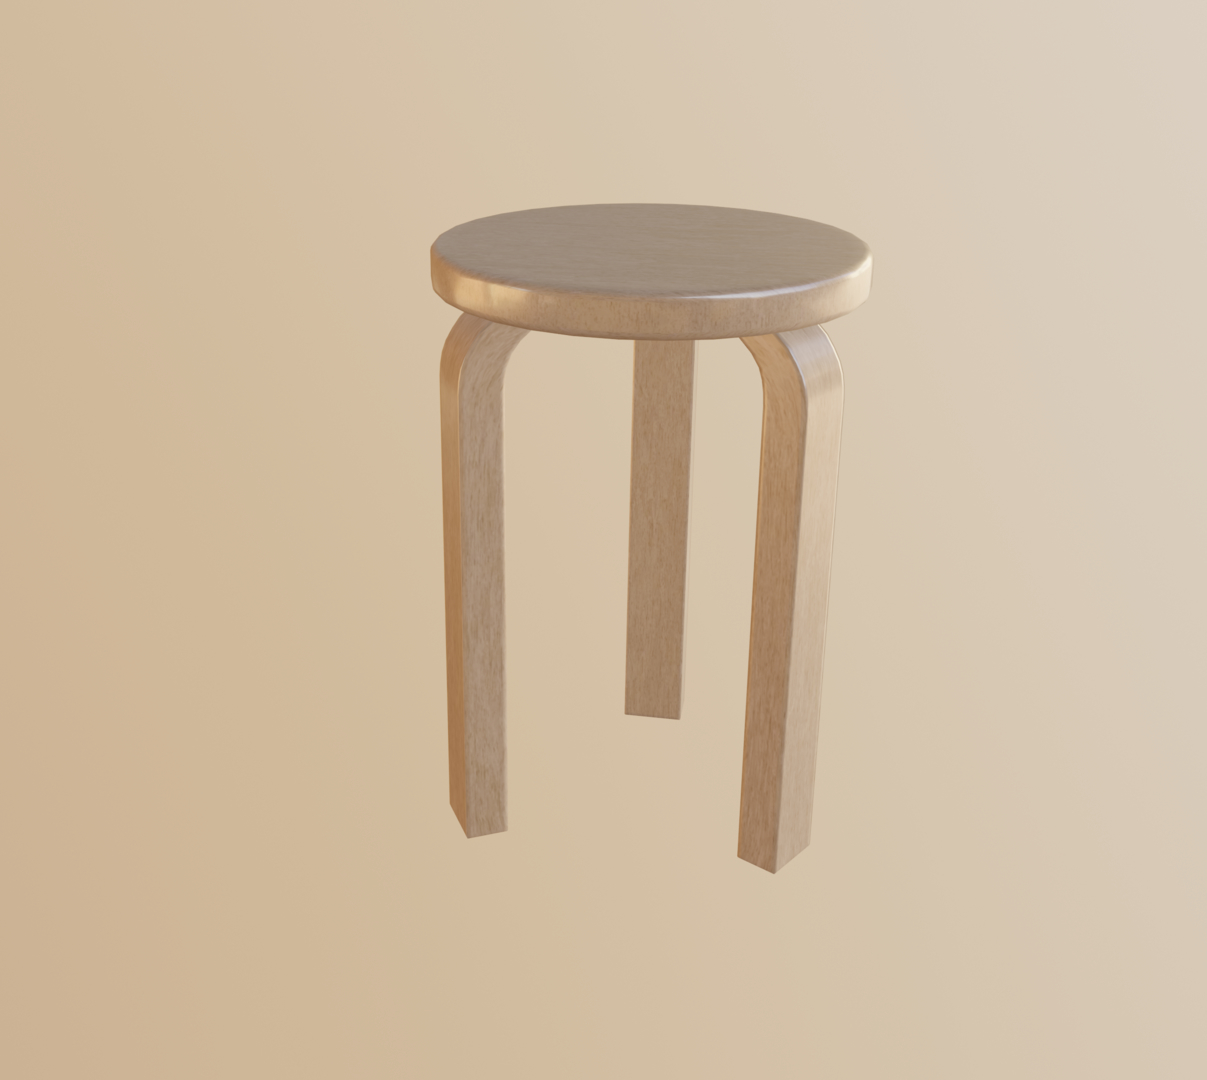 3D yellow stool